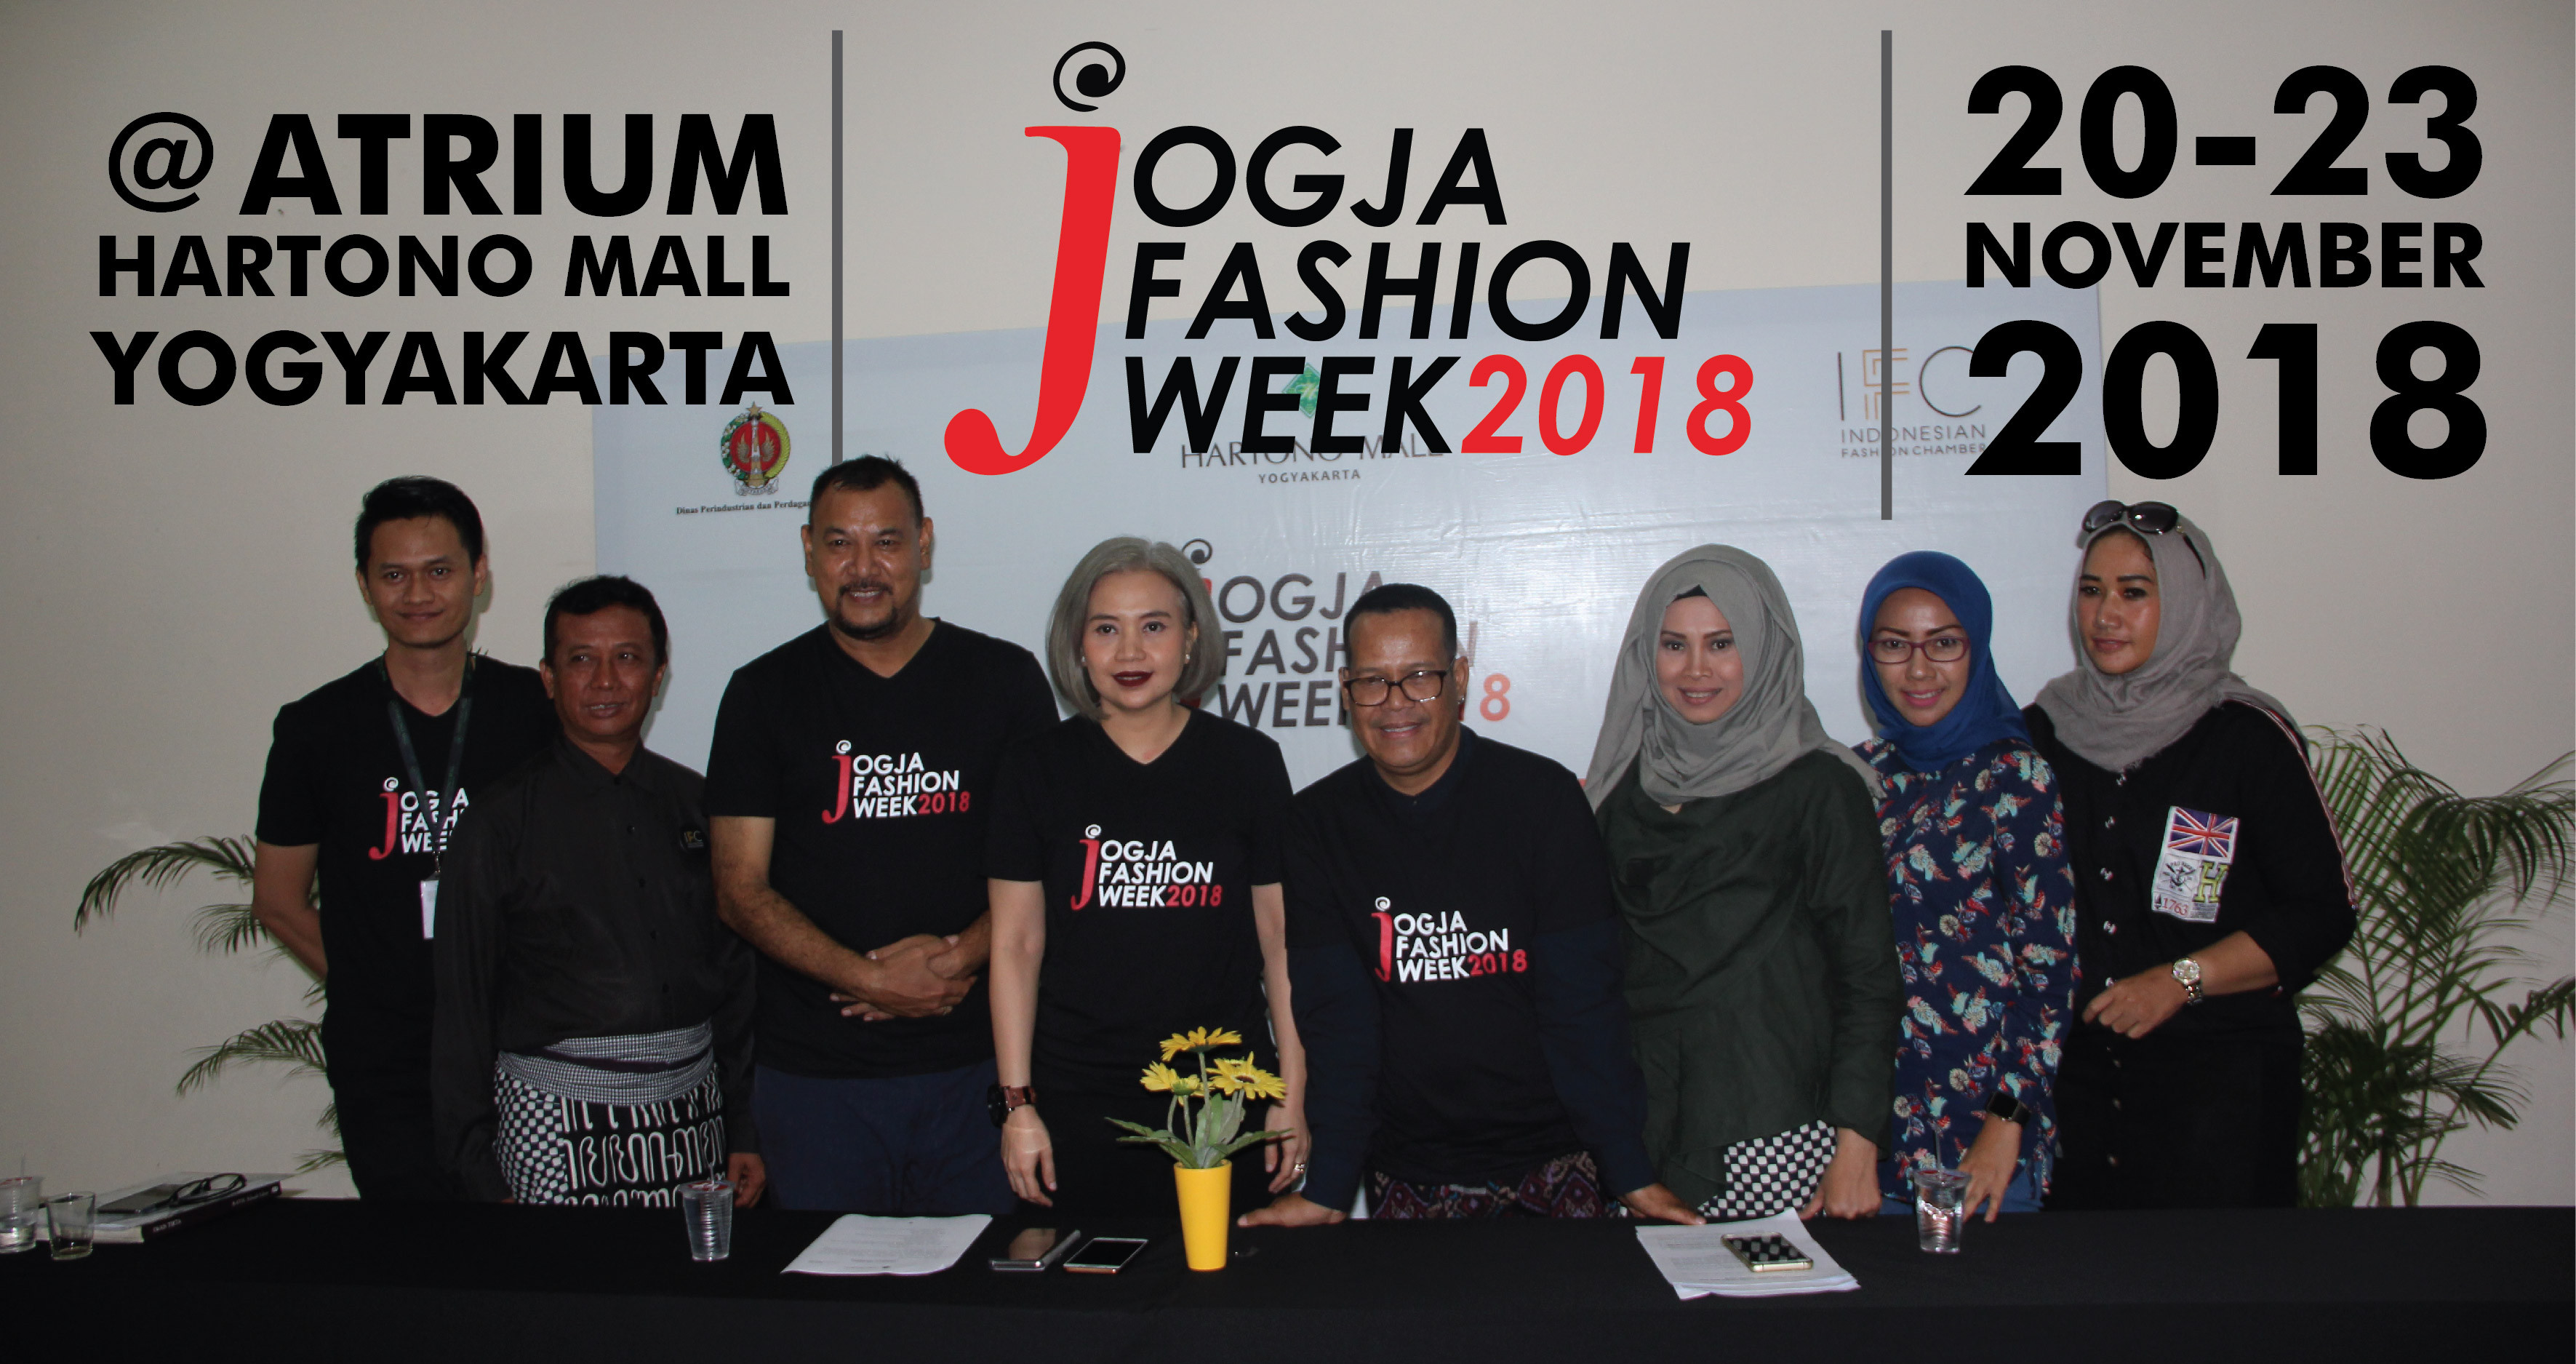 Jadwal Jogja Fashion Week 2018